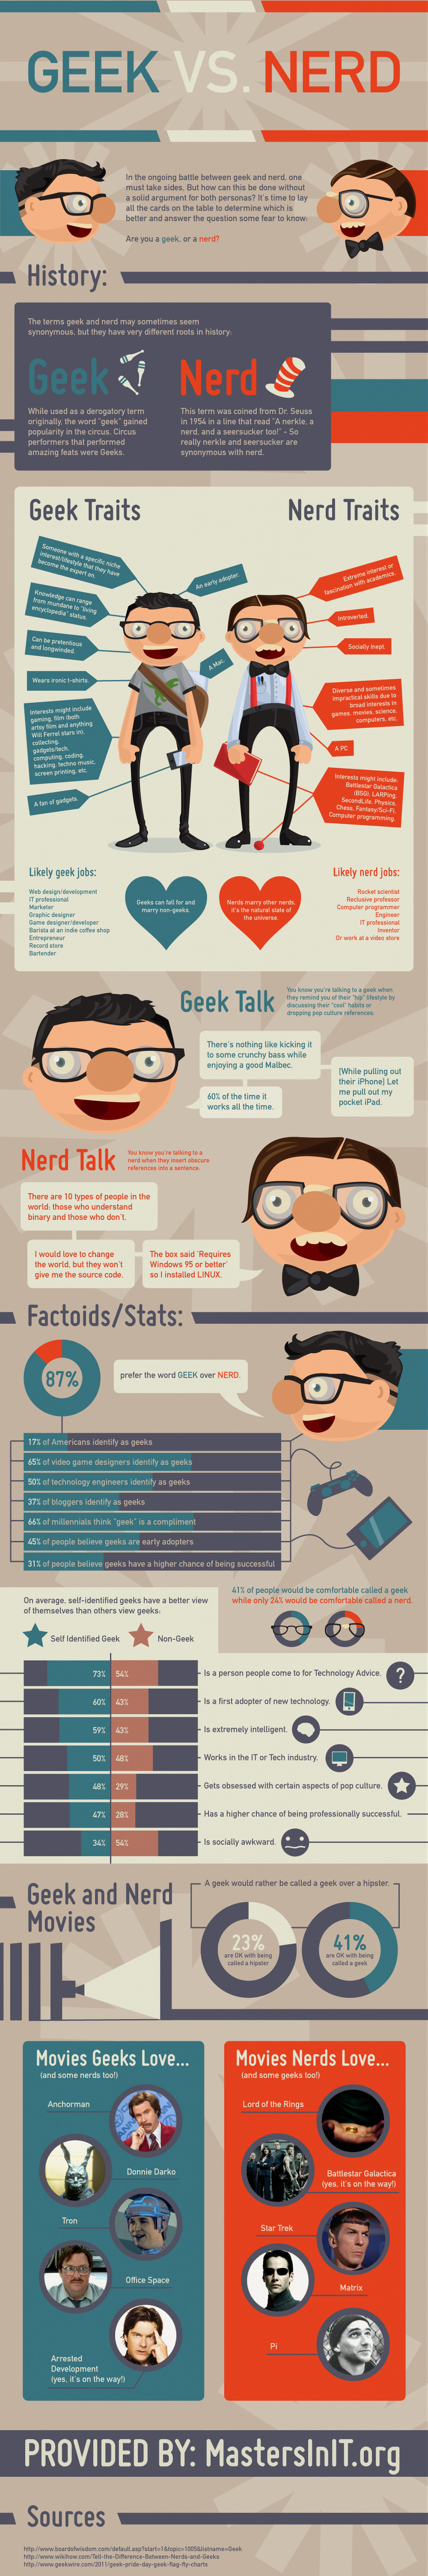 geeks-vs-nerds.jpeg